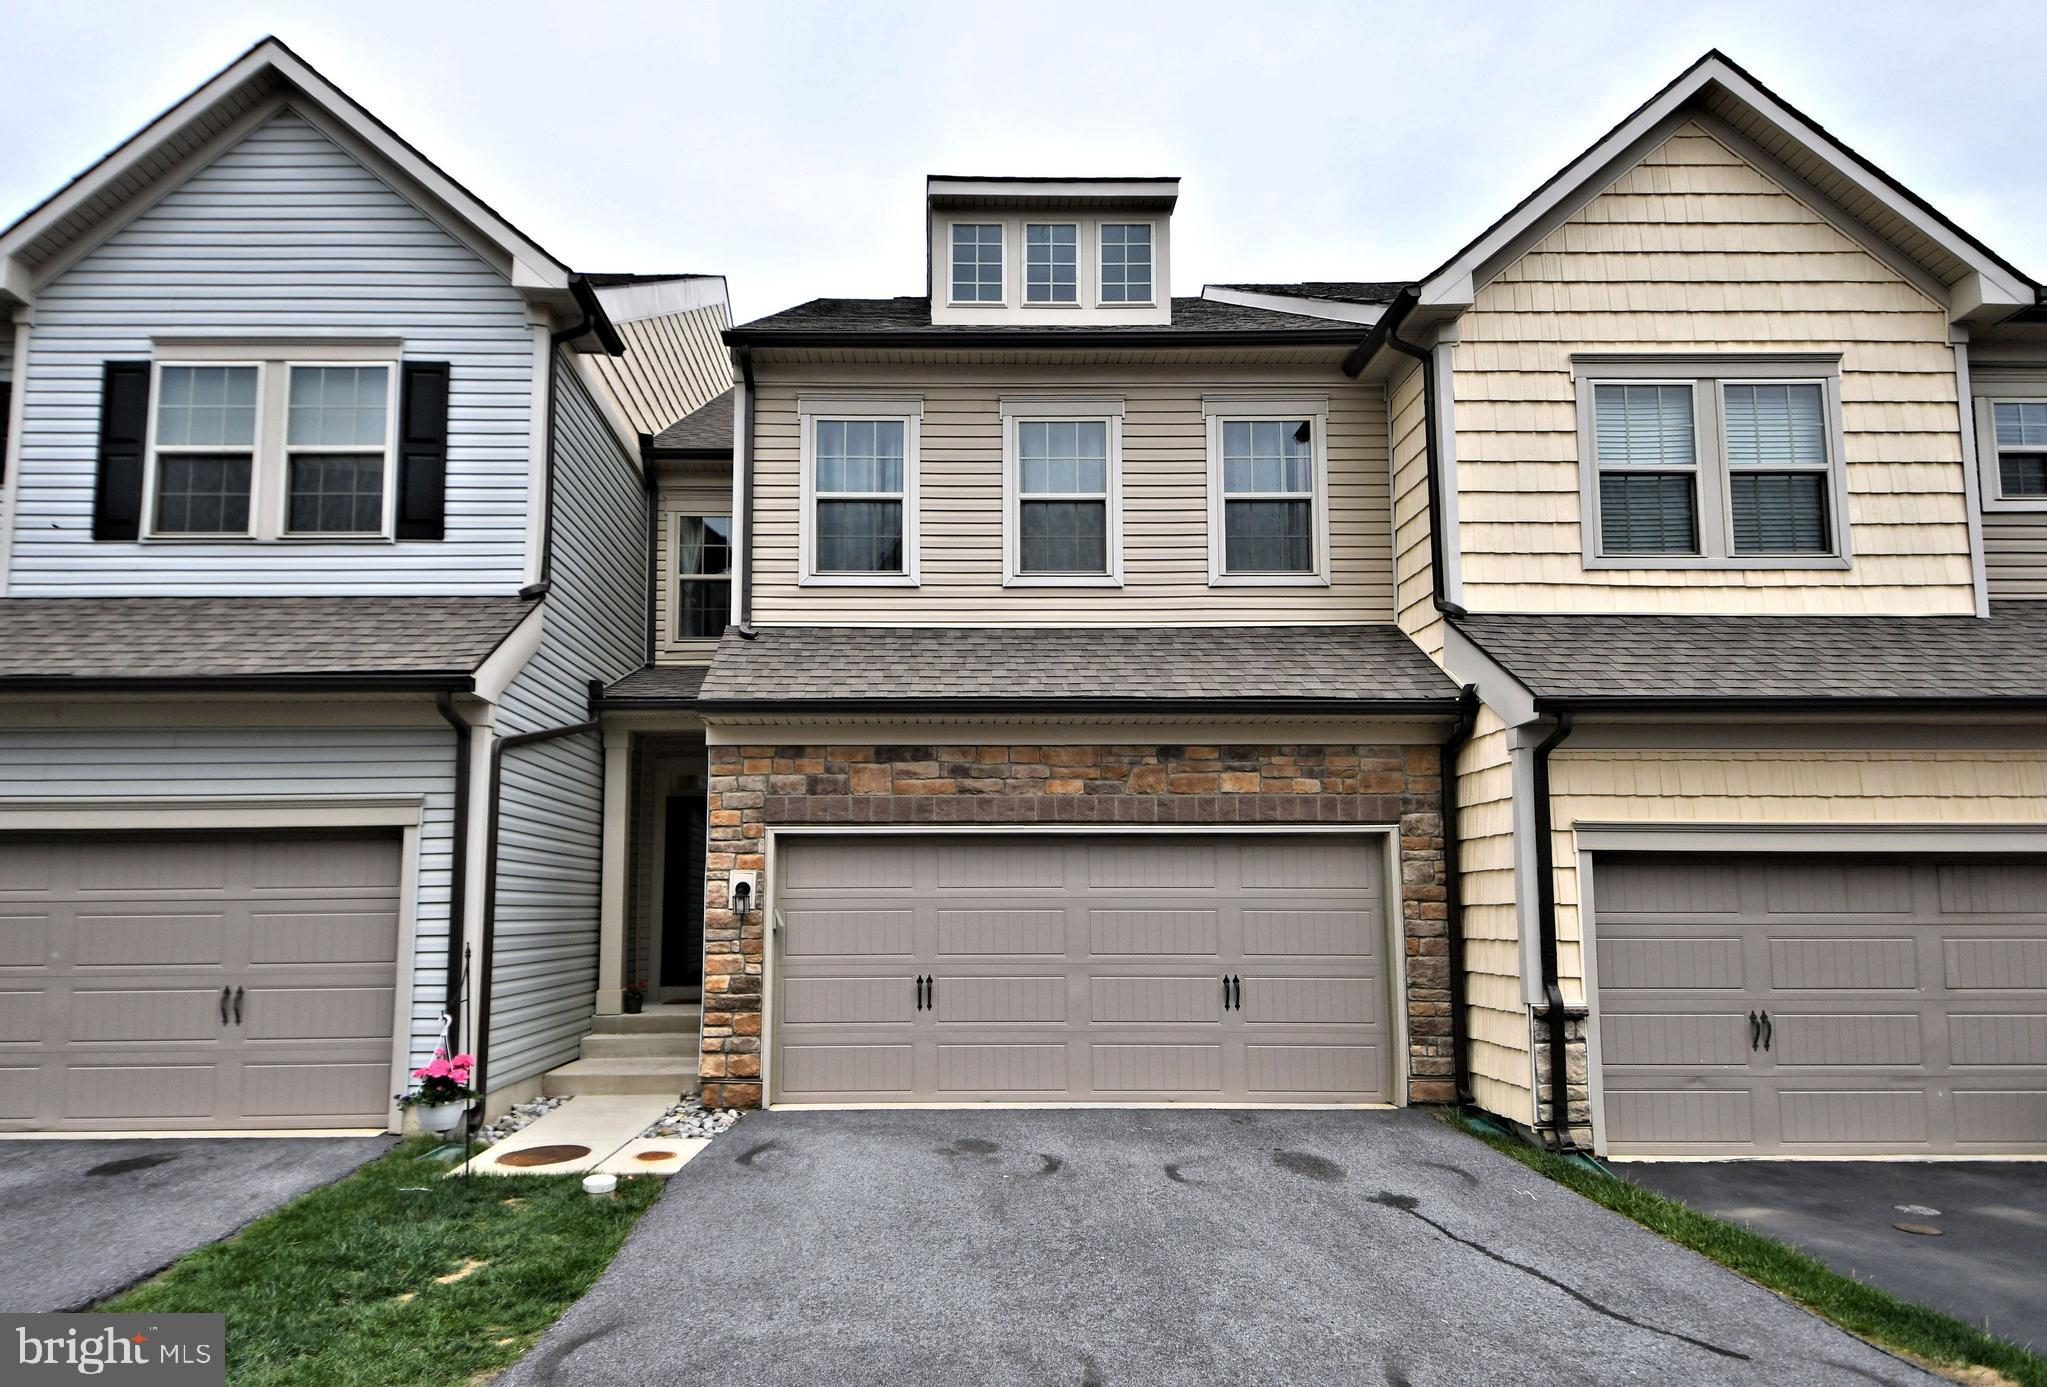 *** Showings Start 5/14 *** Highly upgraded, Stunning, Luxurious Adirondack Model 3 BR, 2.5 BA Finished Basement Carriage Home in the highly desired Linden Hall Community! Award winning Great Valley schools! This 4 year young townhome has finished walk out basement, 2 car garage, sunroom, abundant recessed lights and Golf Course view from the maintenance free deck.  As you enter into the foyer, you will be greeted dark colored hardwood floors with wide plank. Upgraded Kitchen with Timberlake cherry wood cabinets to invite the chef in you with huge center island, granite countertops, custom tile backsplash, undermount sink and pantry. BRAND NEW Dishwasher and Stainless Steel Fridge, Gas Range and Rangehood. Nice sized light filled Family Room for your gathering and an additional sunroom to enjoy. Nice sized Trex Deck with golf course views, powder room and oversized 2 car garage round out the first floor. As you go up the elegant hardwood stairs with metal spindles, you are greeted with the huge master bedroom on your left and the other bedrooms on your right. Huge Master Bedroom with a sitting area, huge walk in closet, recessed lights and ceiling fan.  Retreat into the luxurious Master Bath with  upgraded tiles, granite vanity top, double sink and oversized tiled shower. Large windows allow for more natural light throughout the second floor. Two other nice sized bedrooms with ceiling fans. A study nook in one of the bedrooms is perfect for your work from home needs. Upgraded hall bath with granite tops and tiled tub shower with tiled floors.  Convenient second floor laundry. Fully finished walkout basement for multiple purposes - office space/play area/gatherings/additional bedroom. There is a drywalled rough in plumbed space for a future bathroom.  Additional driveway parking in addition to the convenient oversized two car garage and additional street parking near by.  HOA handles lawn and snow. Minutes to Rt 30, Rt 202,  PA Turnpike and Septa. Convenient to Exton